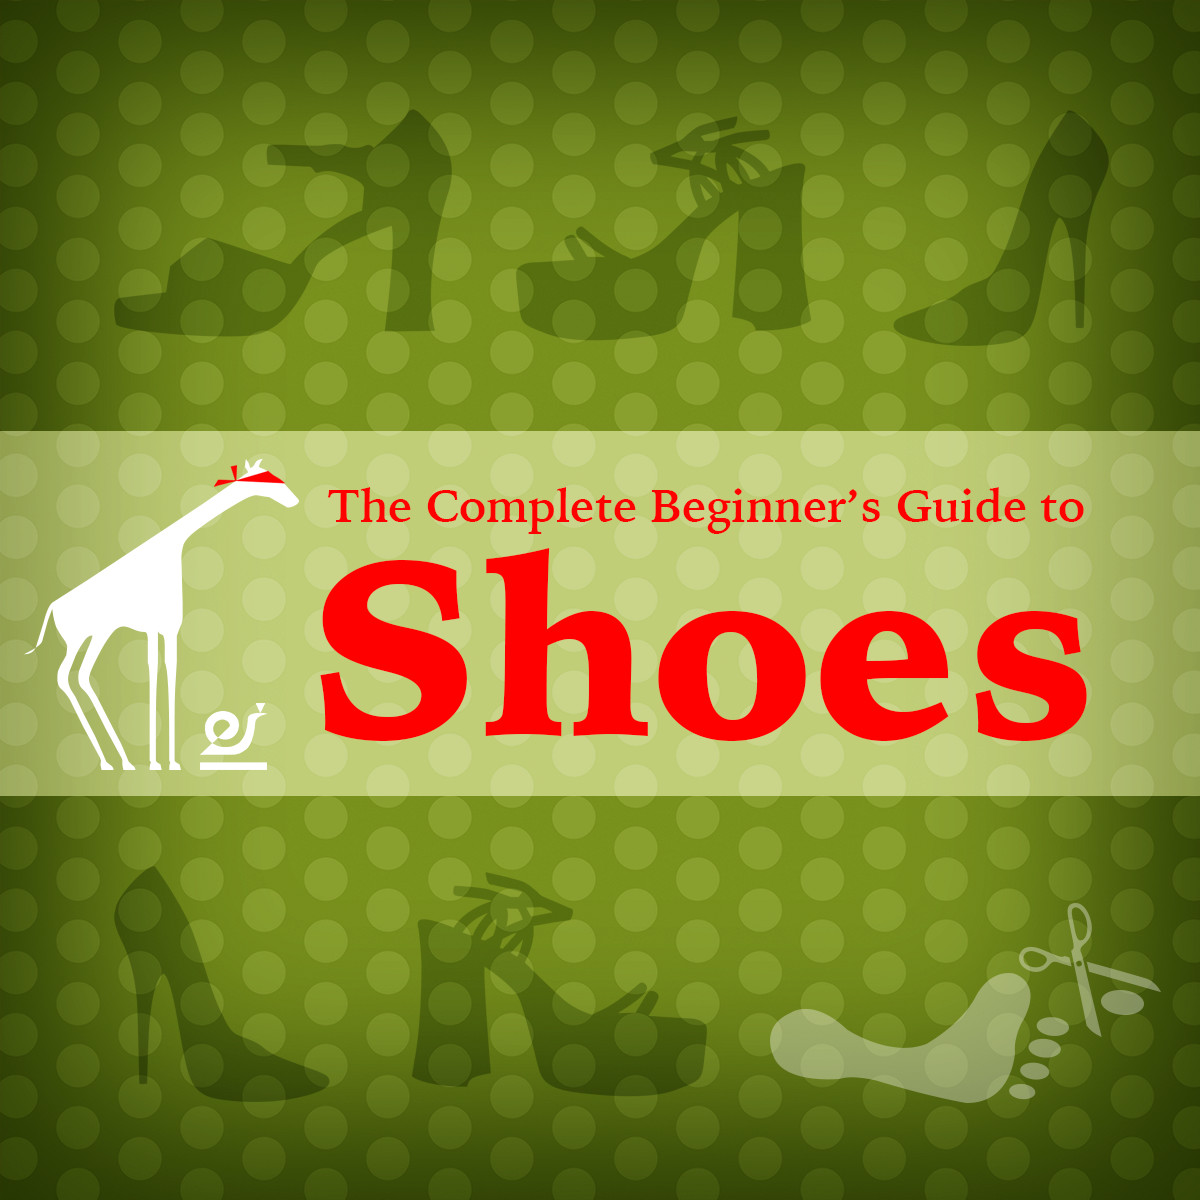 The Complete Beginner's Guide to Shoes